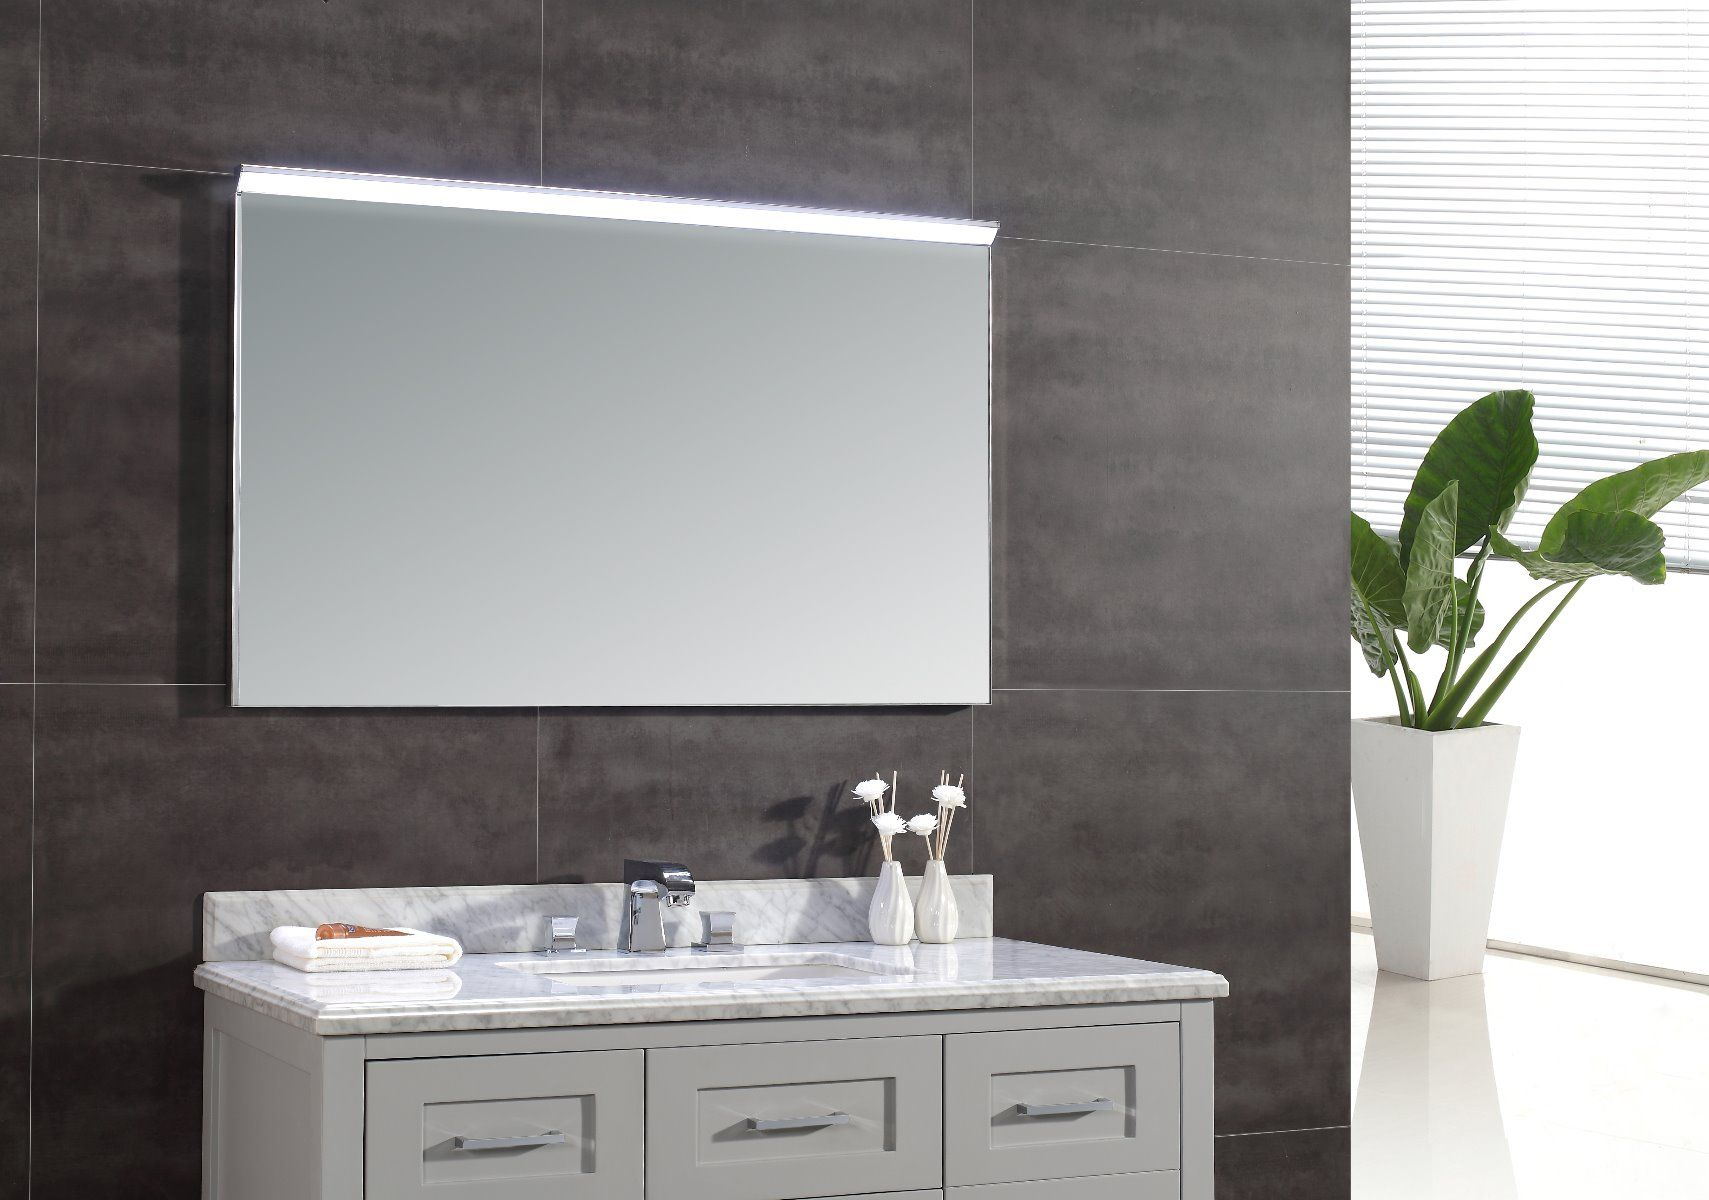 Ove Decors Villon Led Bathroom Mirror: OVE DECORS LED Mirror Wall Hung